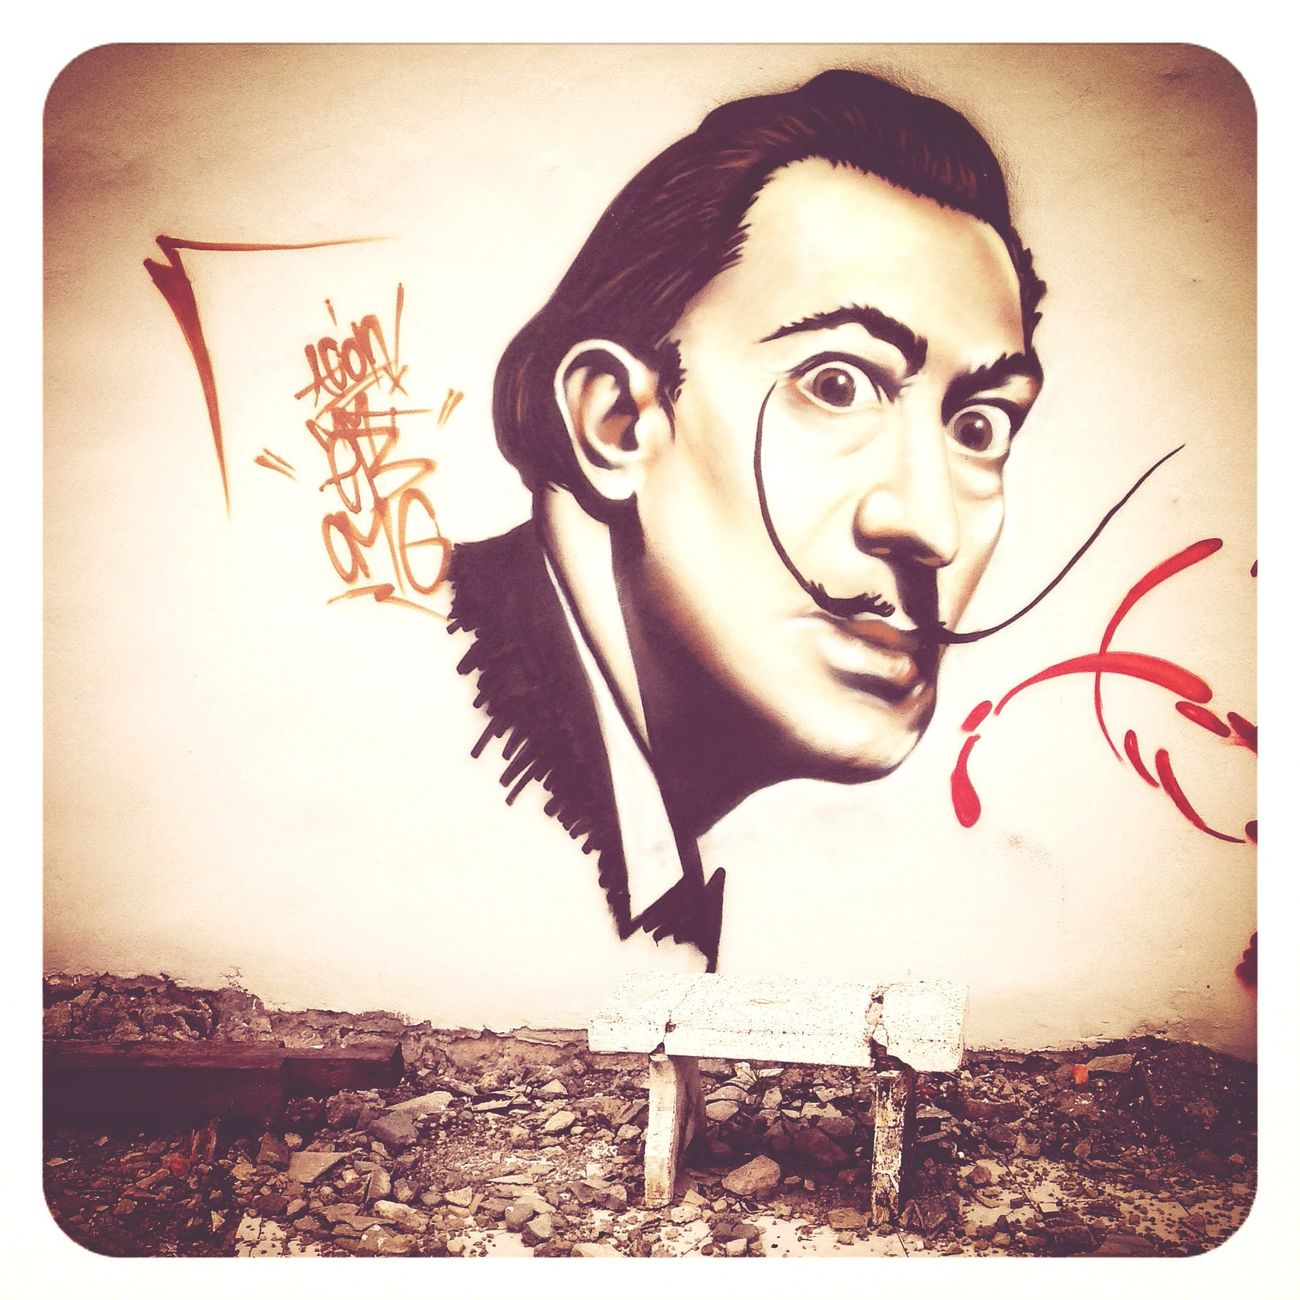 Salvador Dali. Urban Exploration Art - Streetart Enjoying Life Graffiti